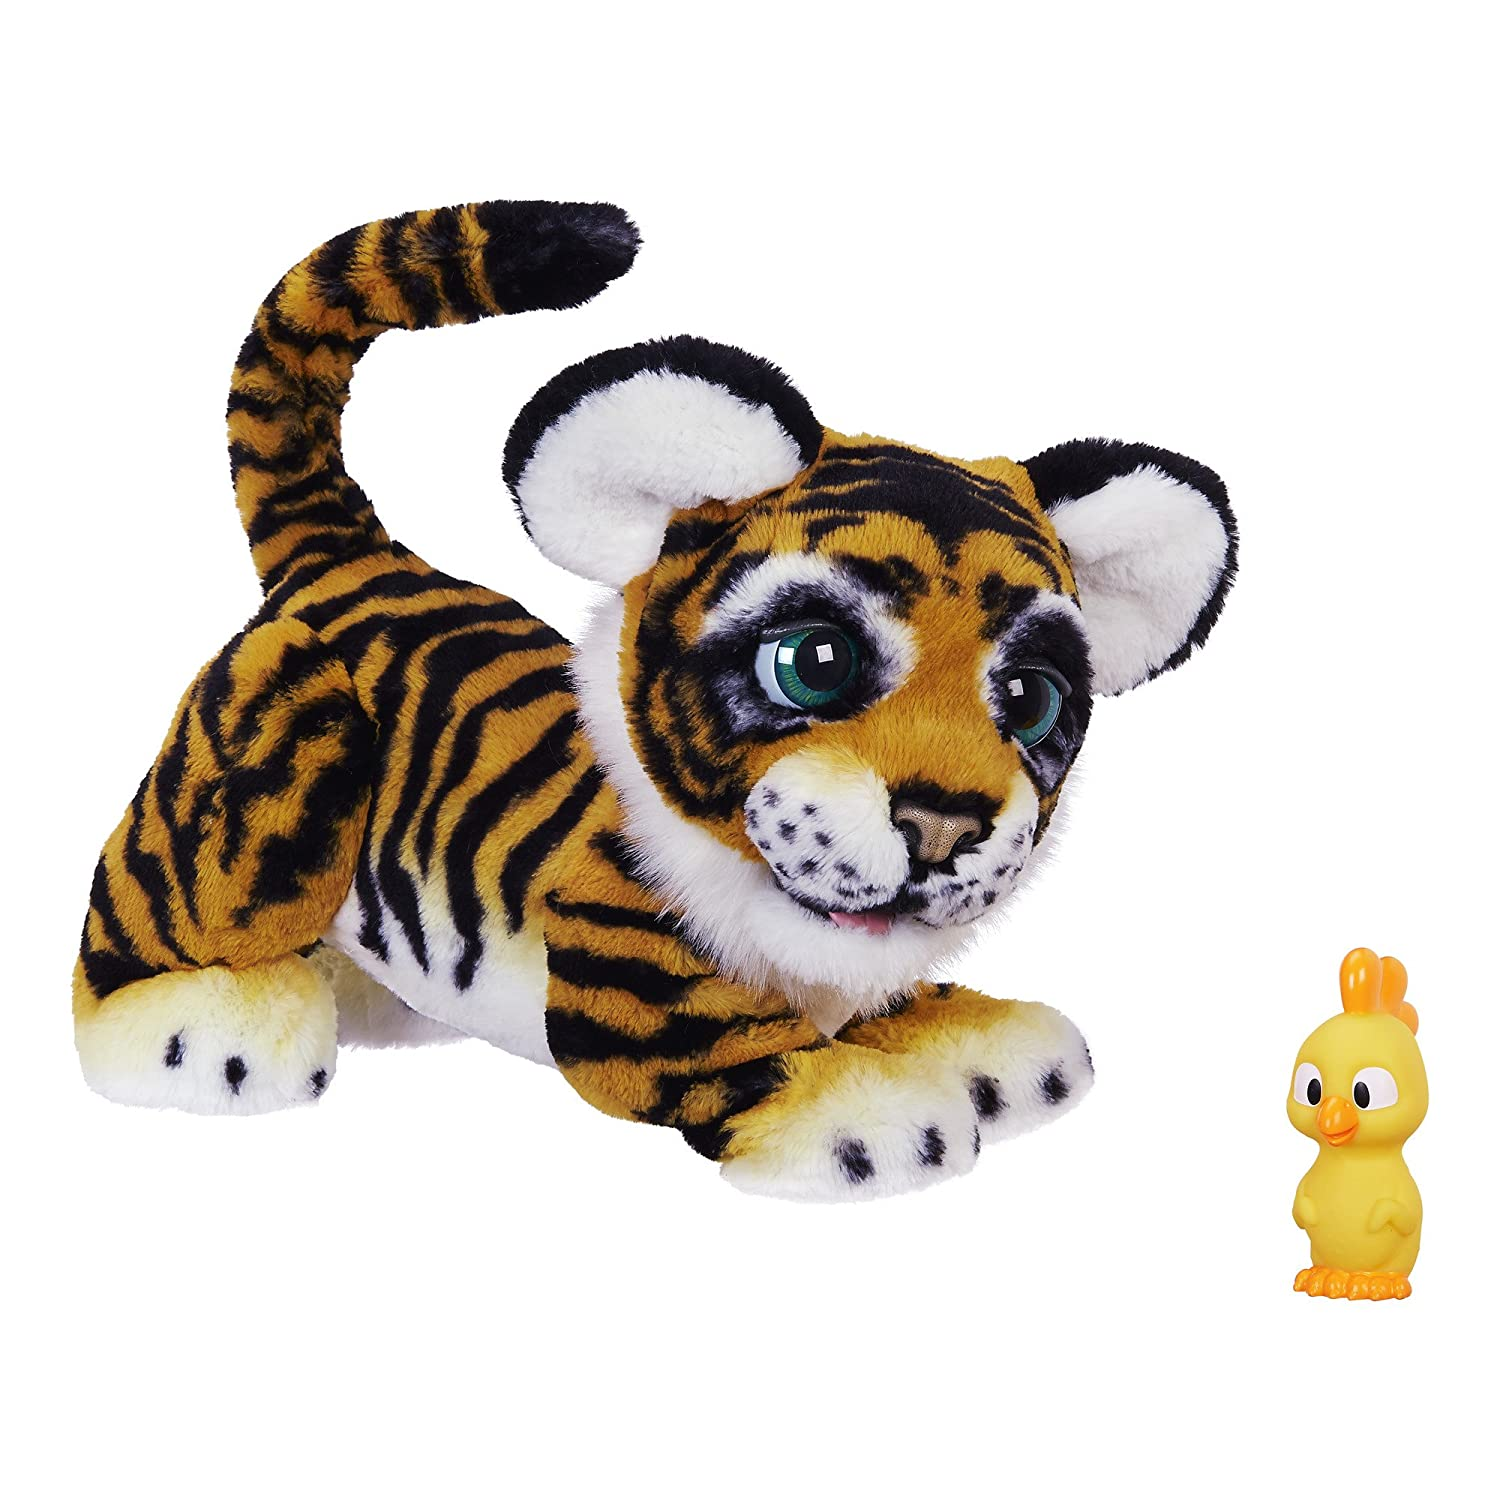 You can buy the furReal Roarin' Tyler, the Playful Tiger here